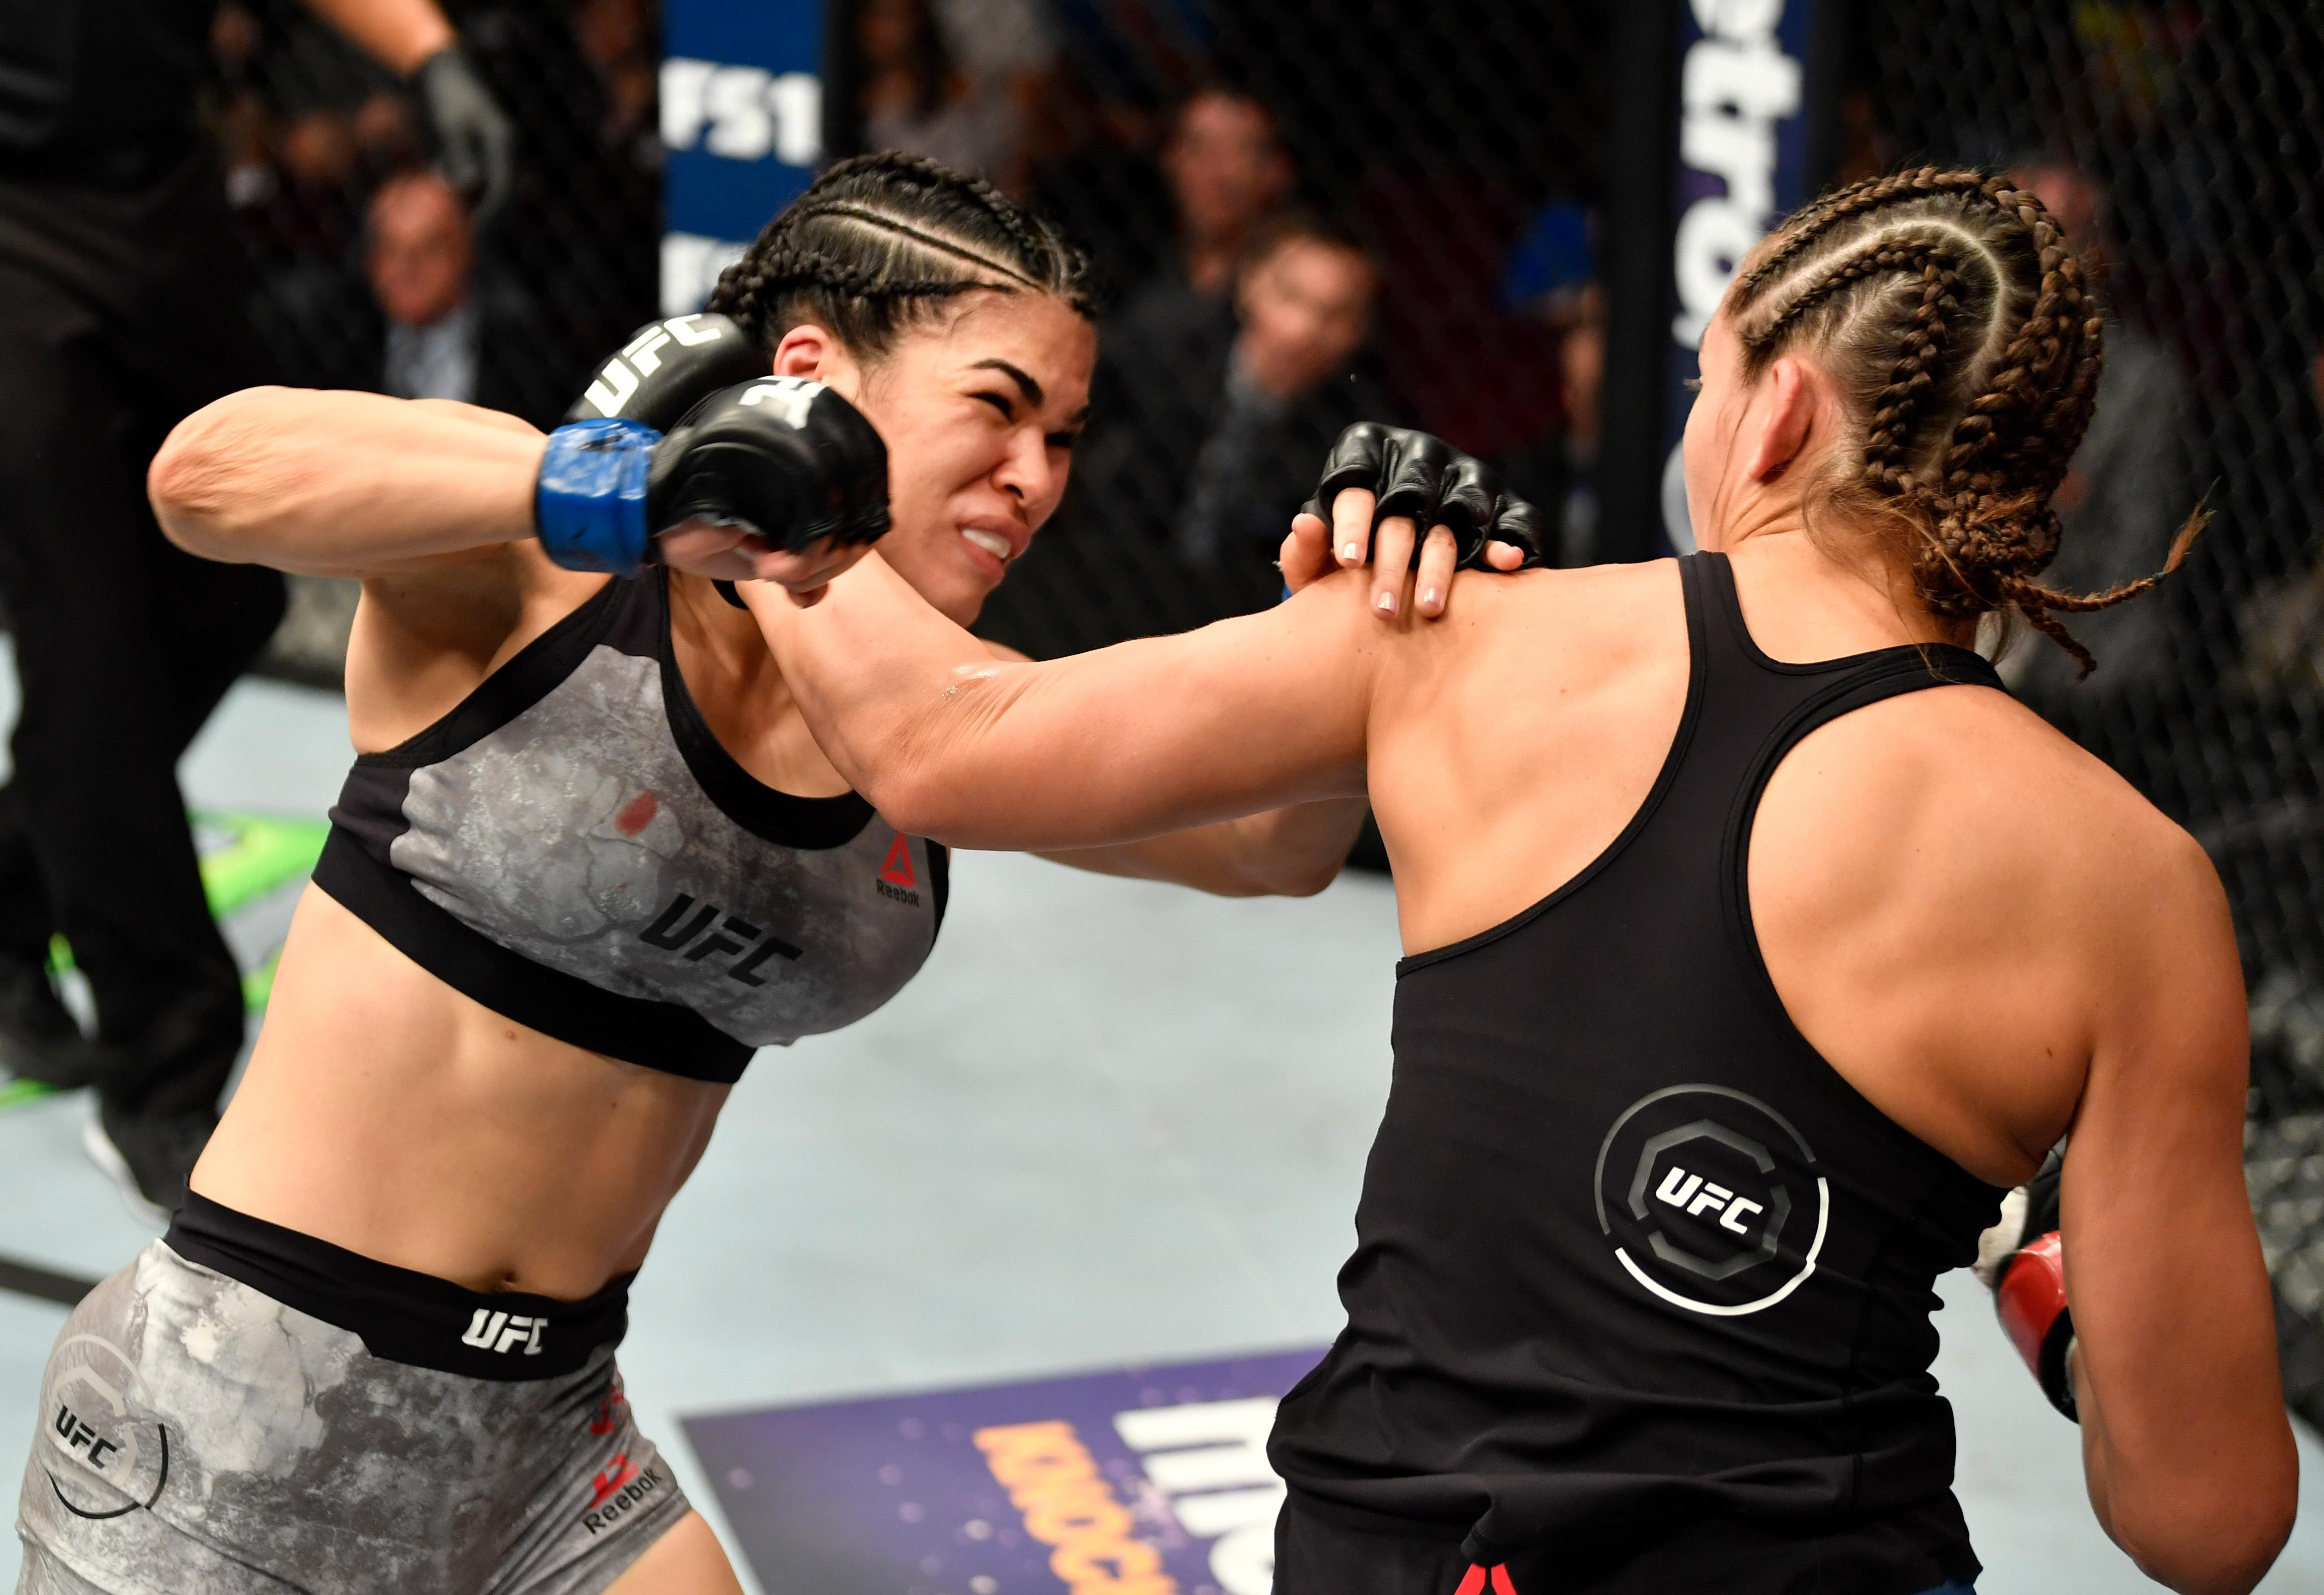 Ostovich's upcoming fight against Paige VanZant is in serious doubt